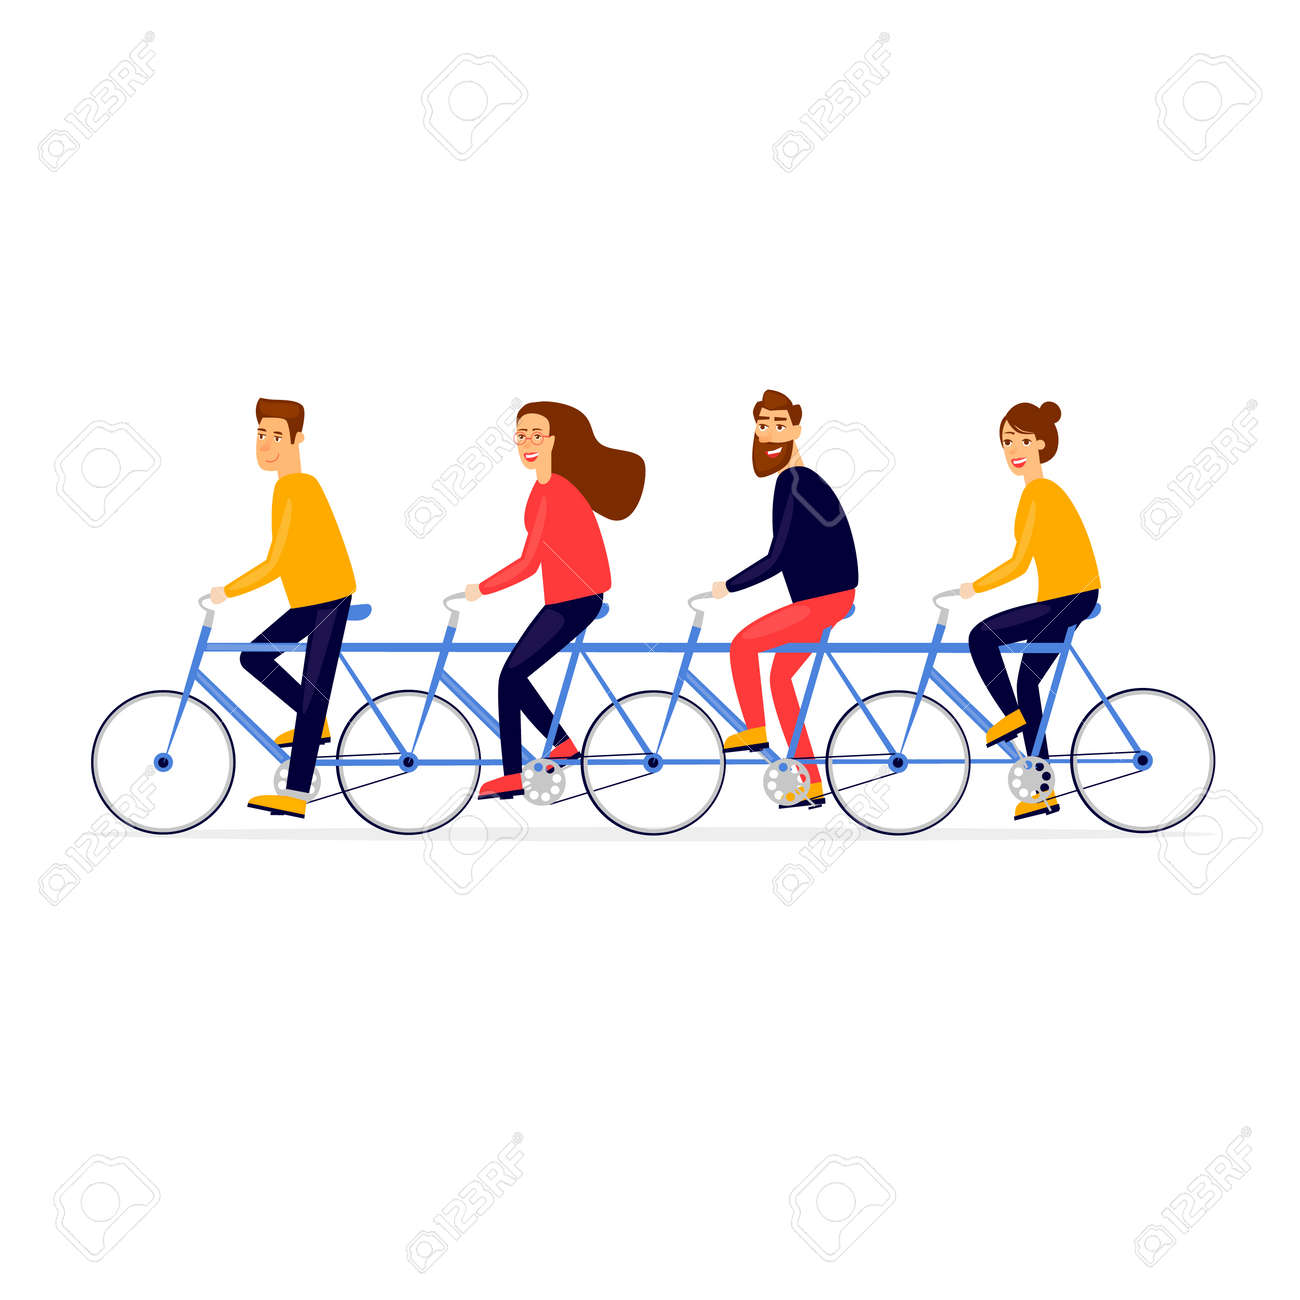 Teamwork business people traveling by bicycle. Flat vector illustration in cartoon style. - 93953283